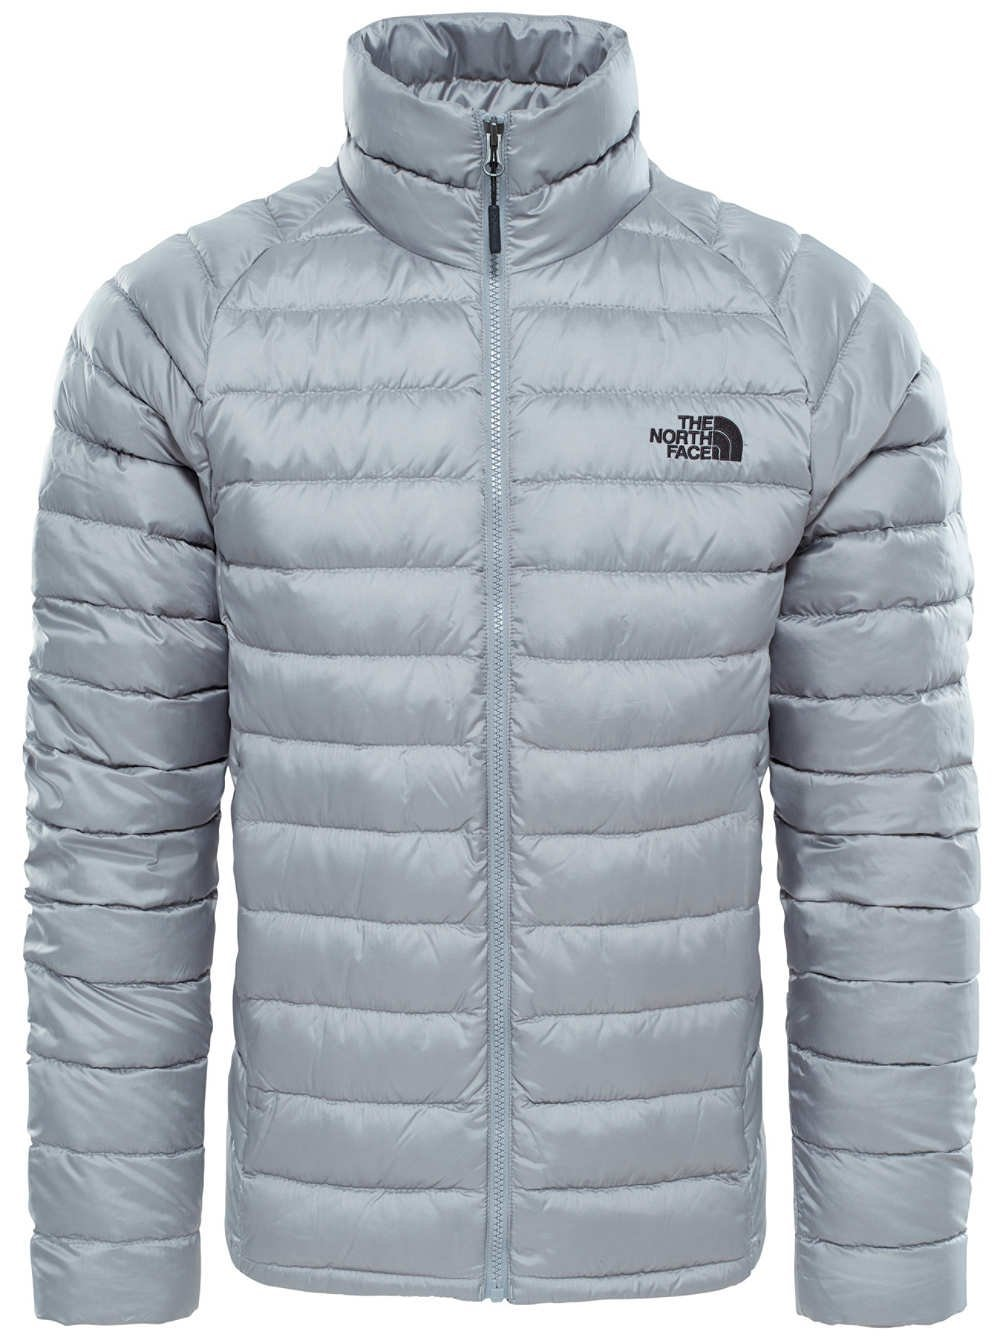 The North Face Jacket Chaqueta Trevail, Hombre, Gris (Monument Grey), XL: Amazon.es: Deportes y aire libre